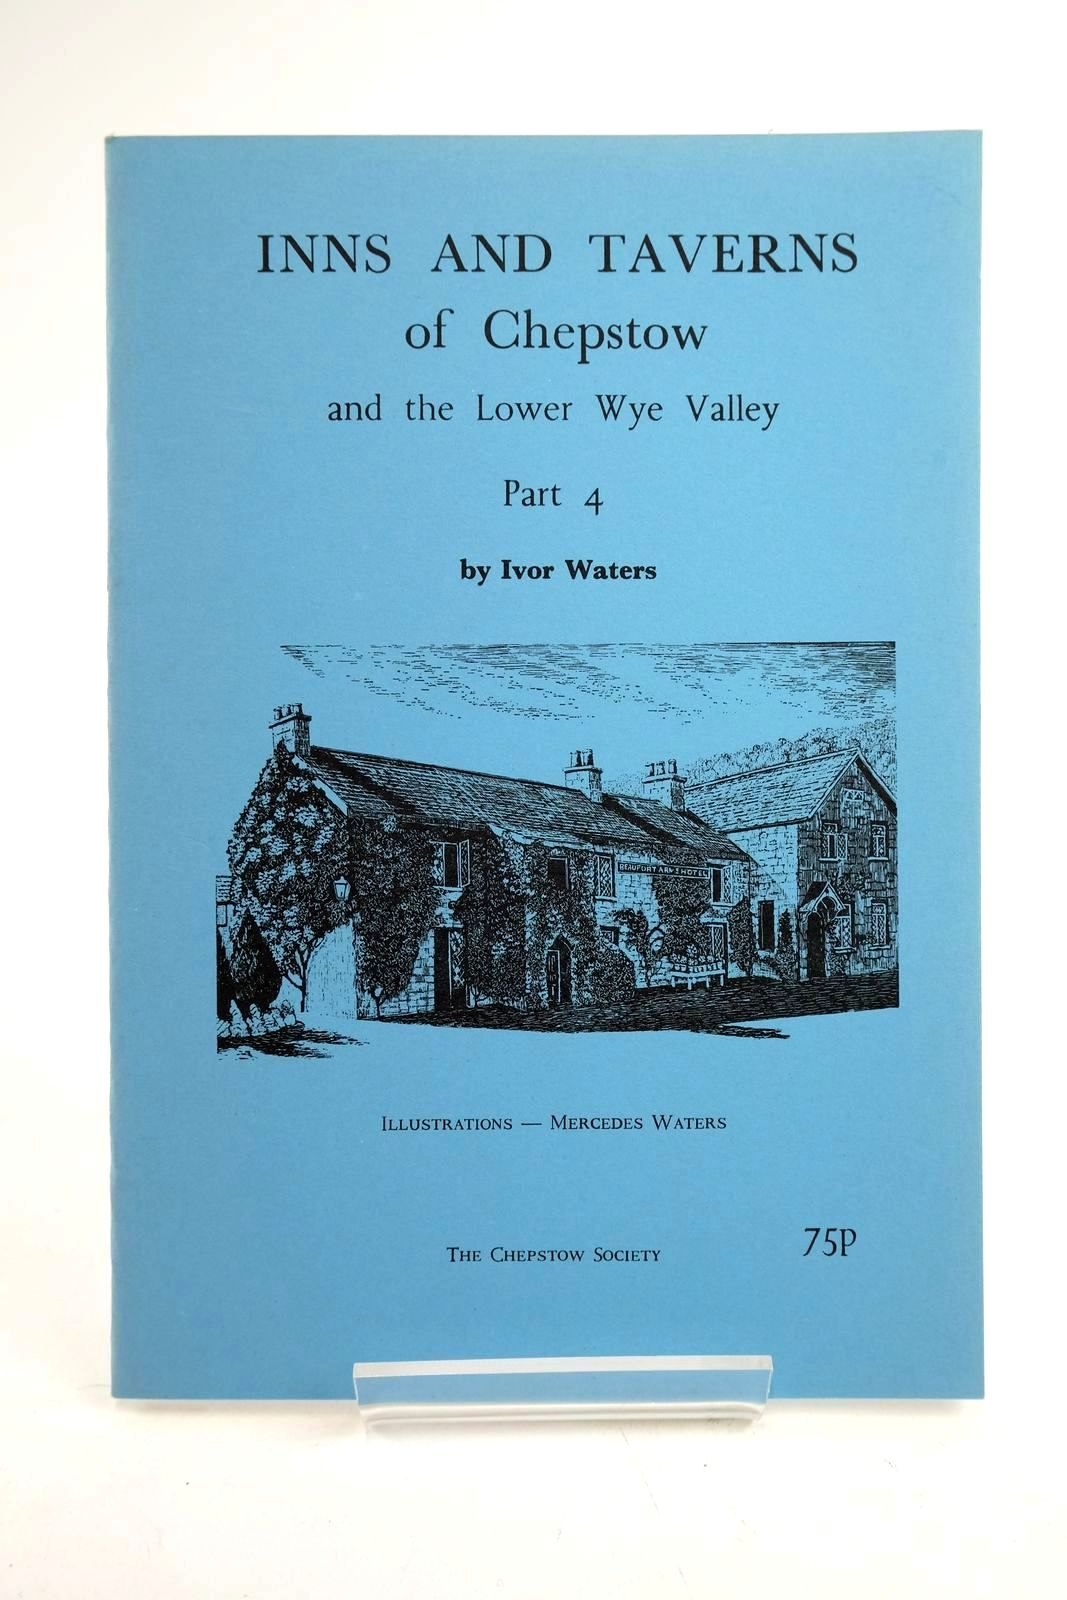 Photo of INNS AND TAVERNS OF CHEPSTOW AND THE LOWER WYE VALLEY PART 4 written by Waters, Ivor illustrated by Waters, Mercedes published by The Chepstow Society (STOCK CODE: 1319535)  for sale by Stella & Rose's Books